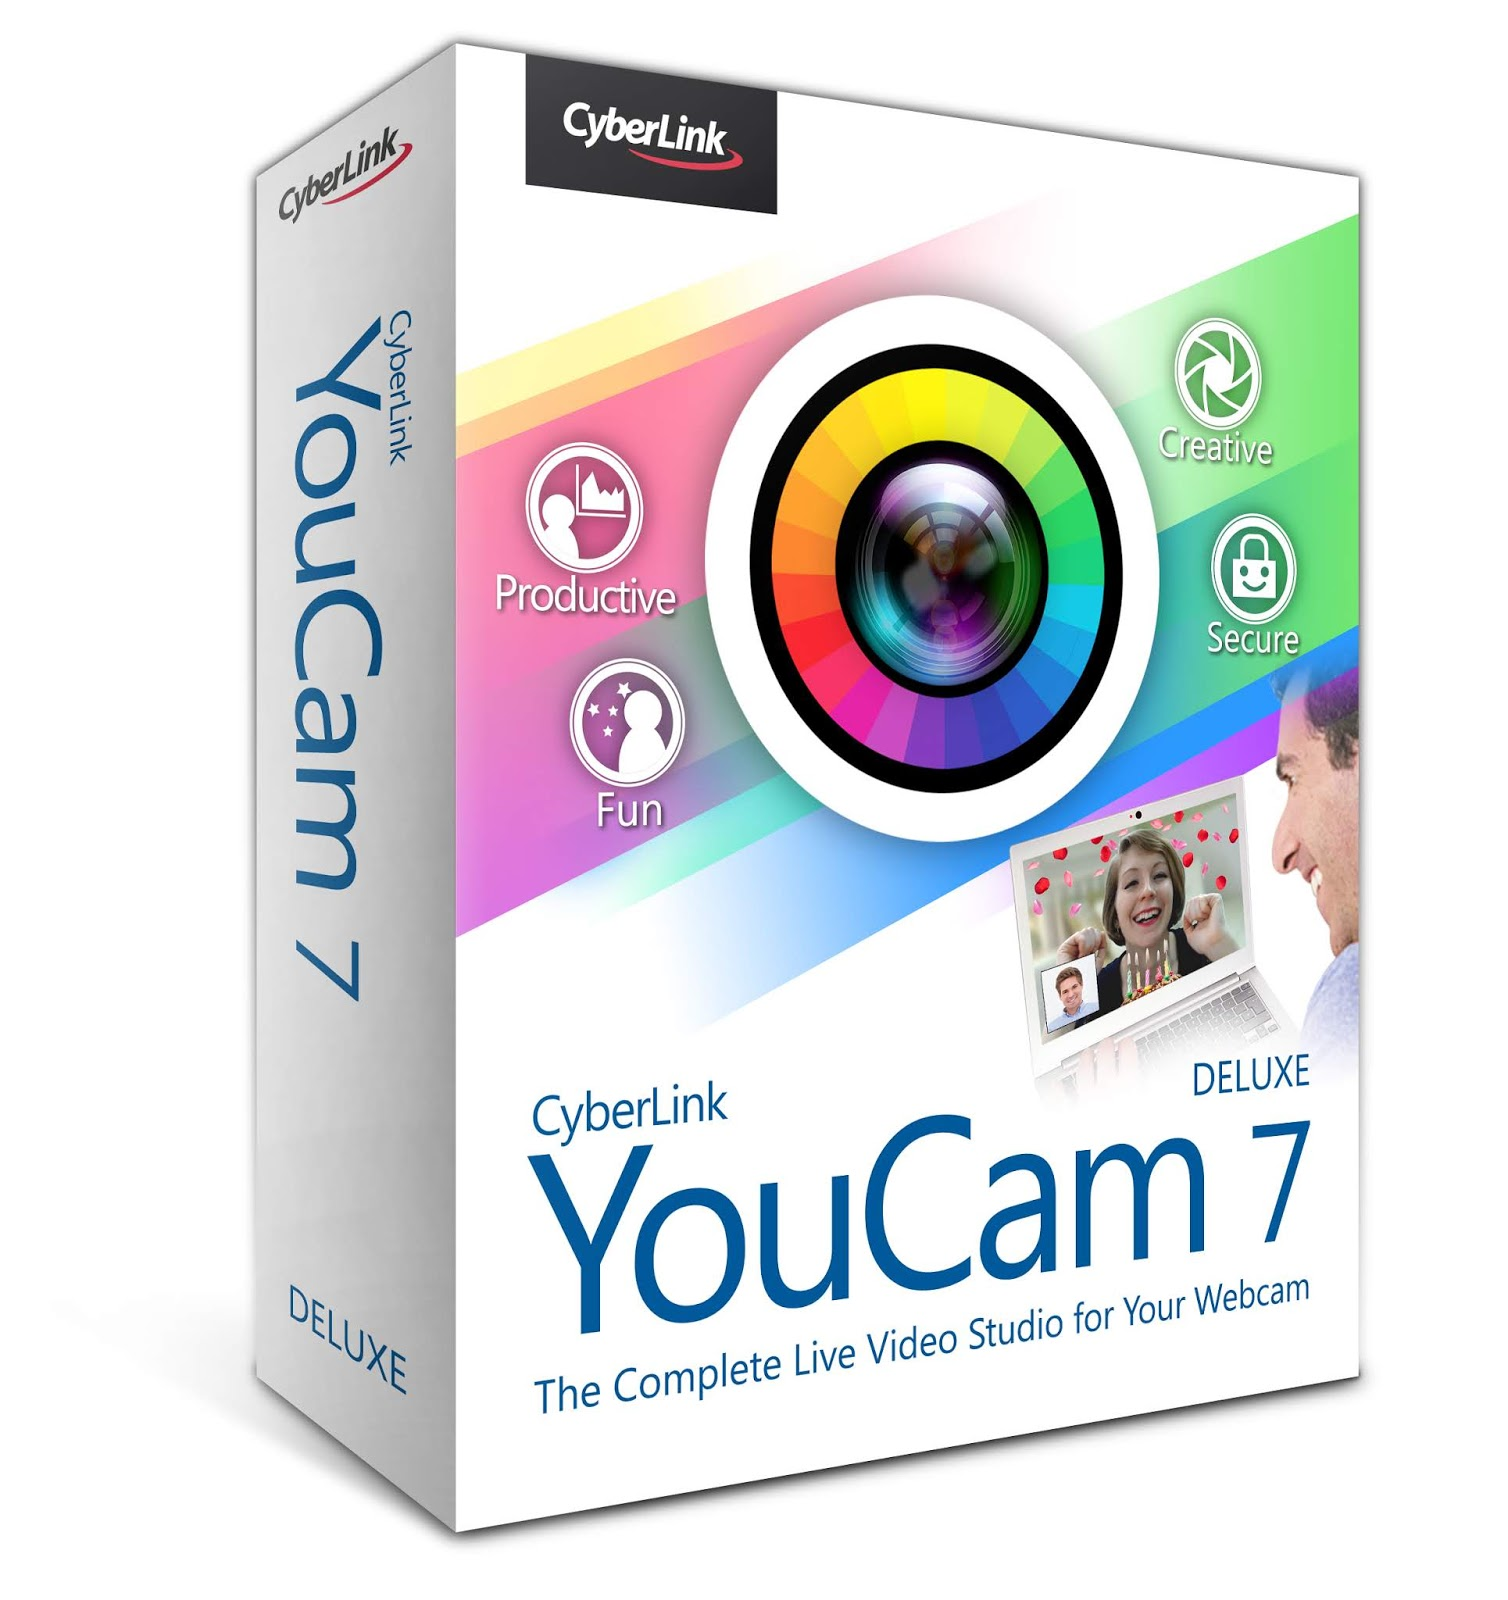 download cyberlink youcam gratis